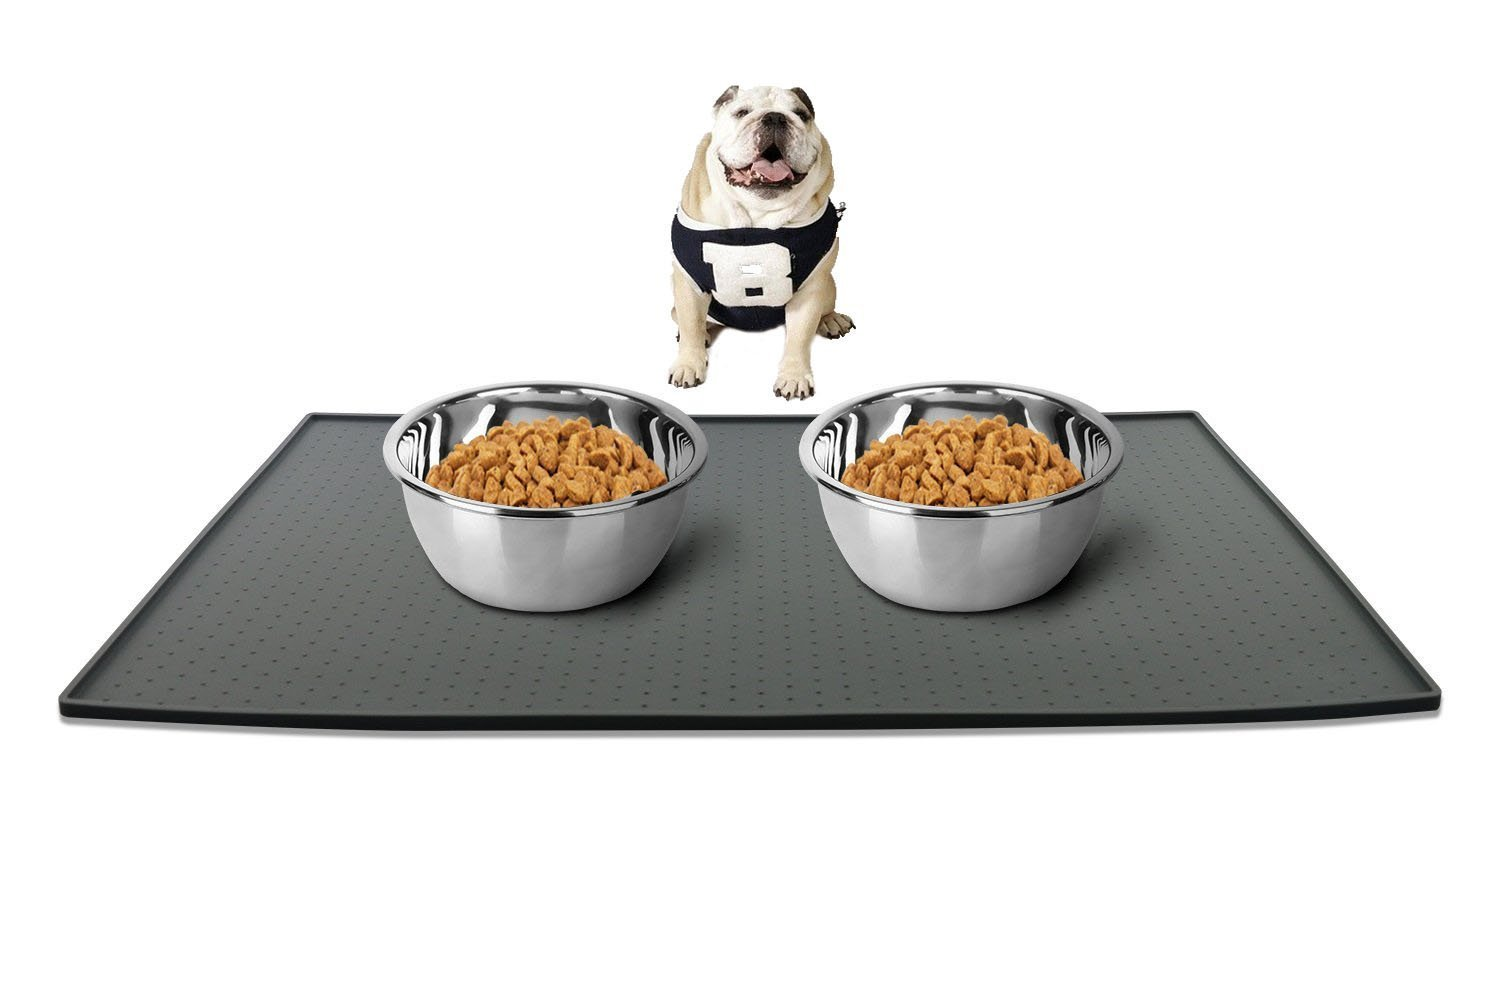 Leeko Large Pet Food Mat,Waterproof Premium FDA Food Grade Silicone Dog Bowl Placemat,Flexible and Easy to Clean Feeding Mat for Cat and Dog,24'' x 16'' x 0.4'' Grey